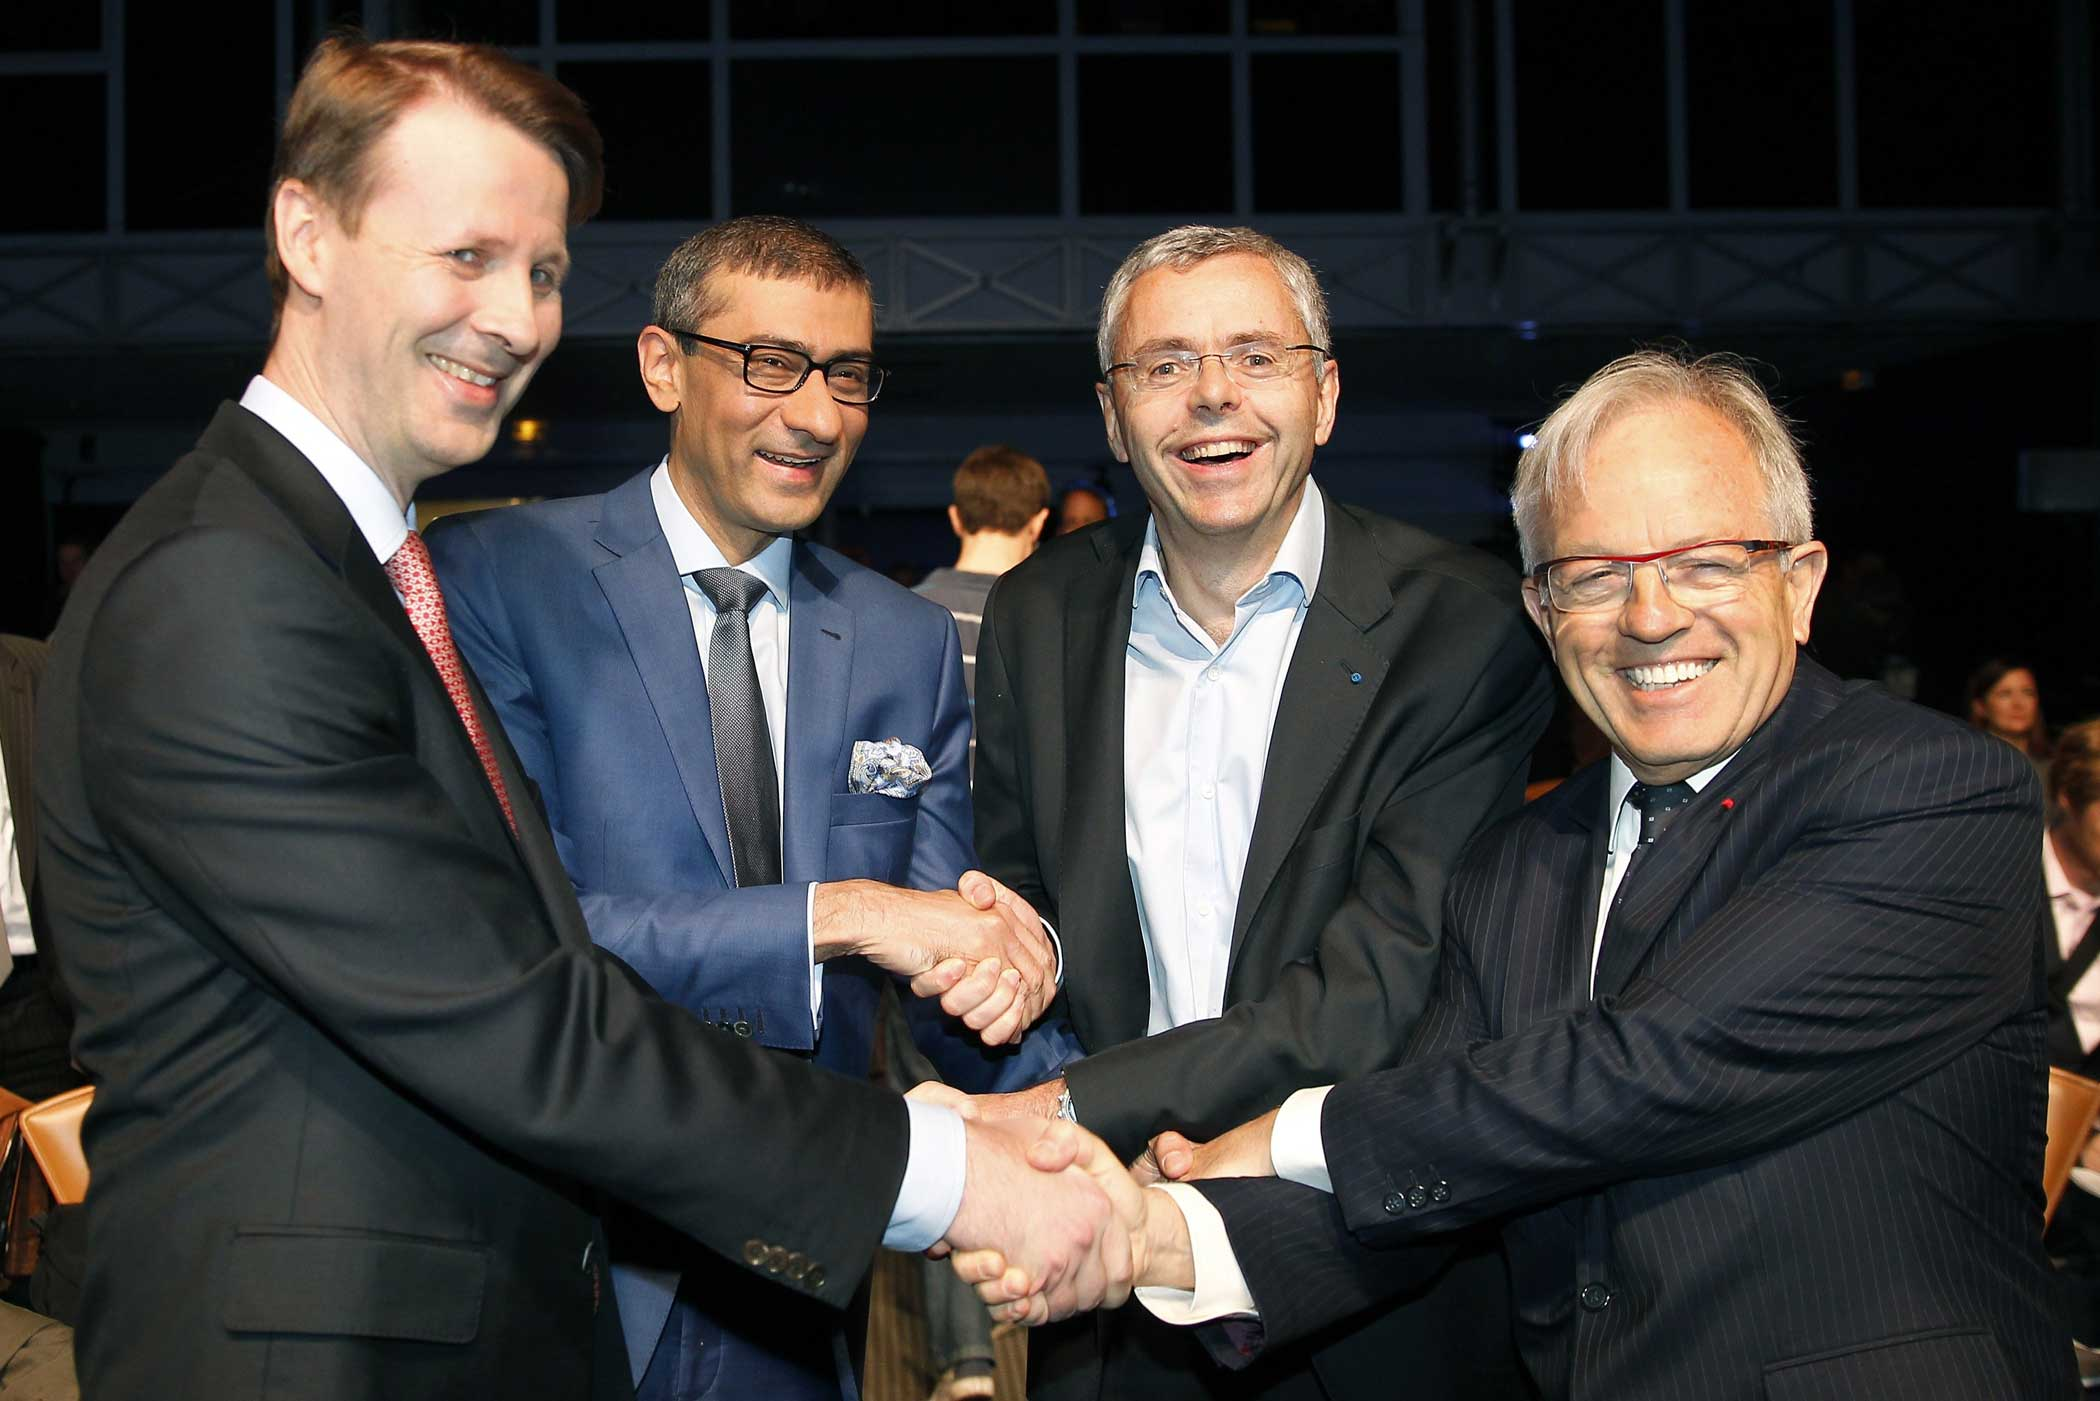 Nokia's chairman Risto Siilasmaa, Nokia's Chief Executive Rajeev Suri, telecommunications company Alcatel-Lucent's Chief Executive Officer Michel Combes and Alcatel-Lucent's chairman of the supervisory board Philippe Camus shake hands prior a press conference on April 15, 2015 in Paris.